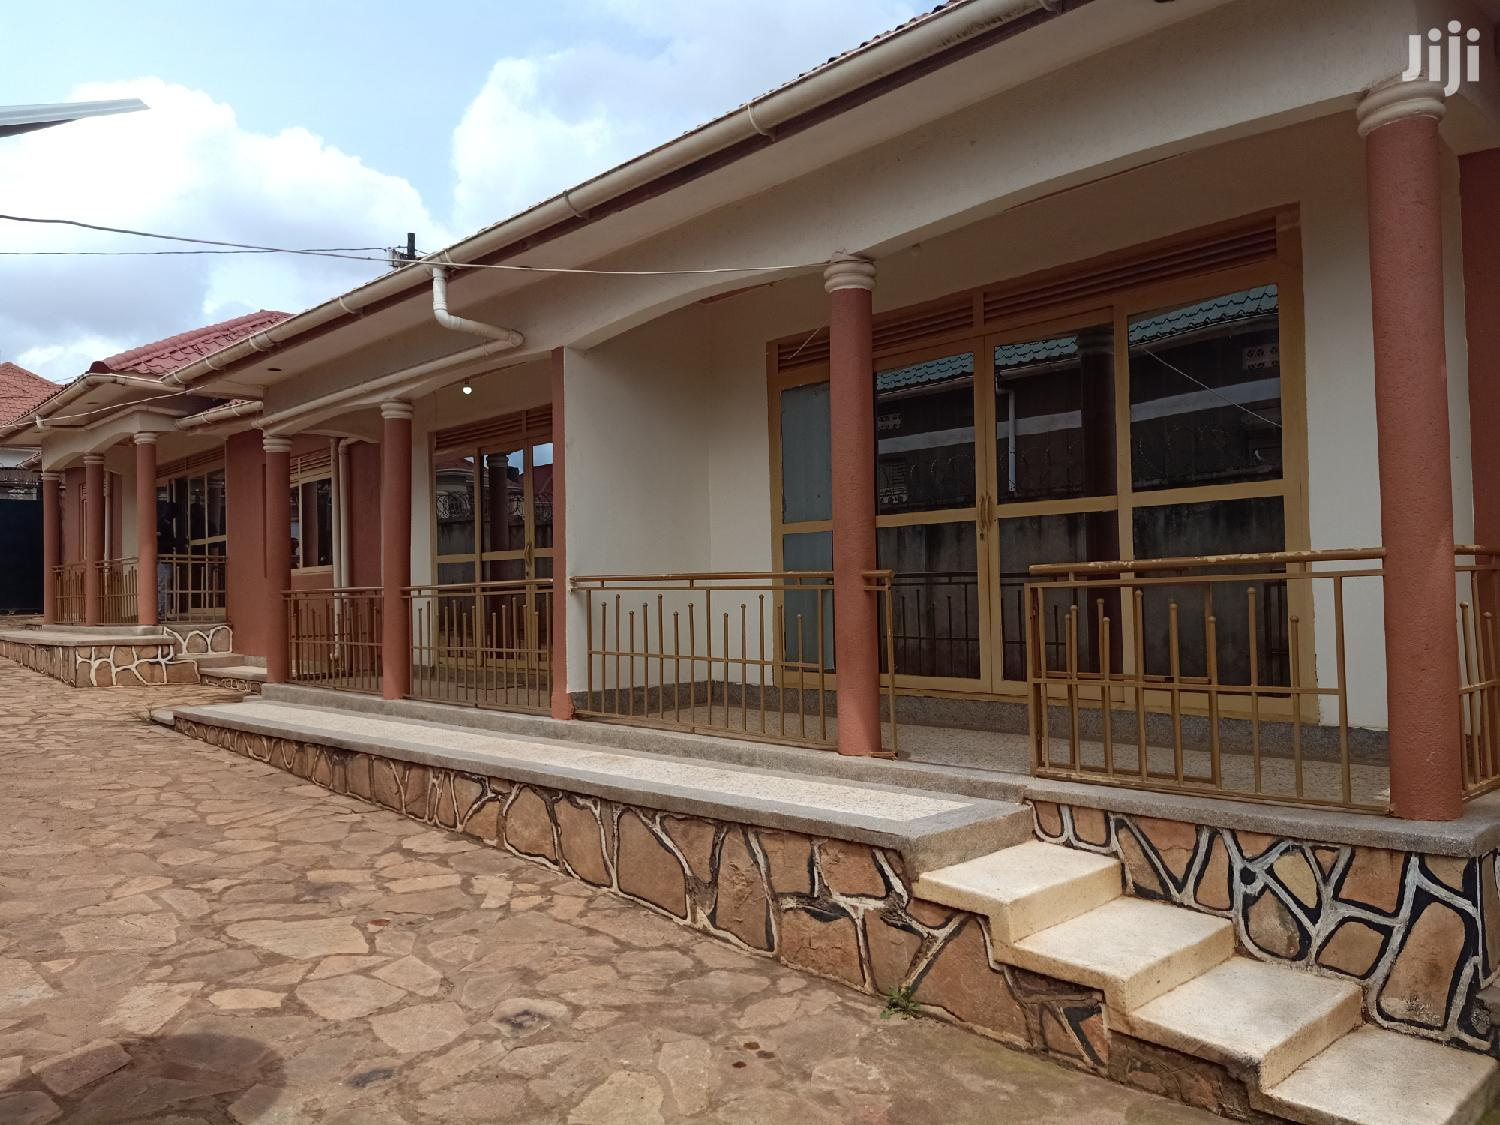 Bweyogerere 2 Bedroom House For Rent